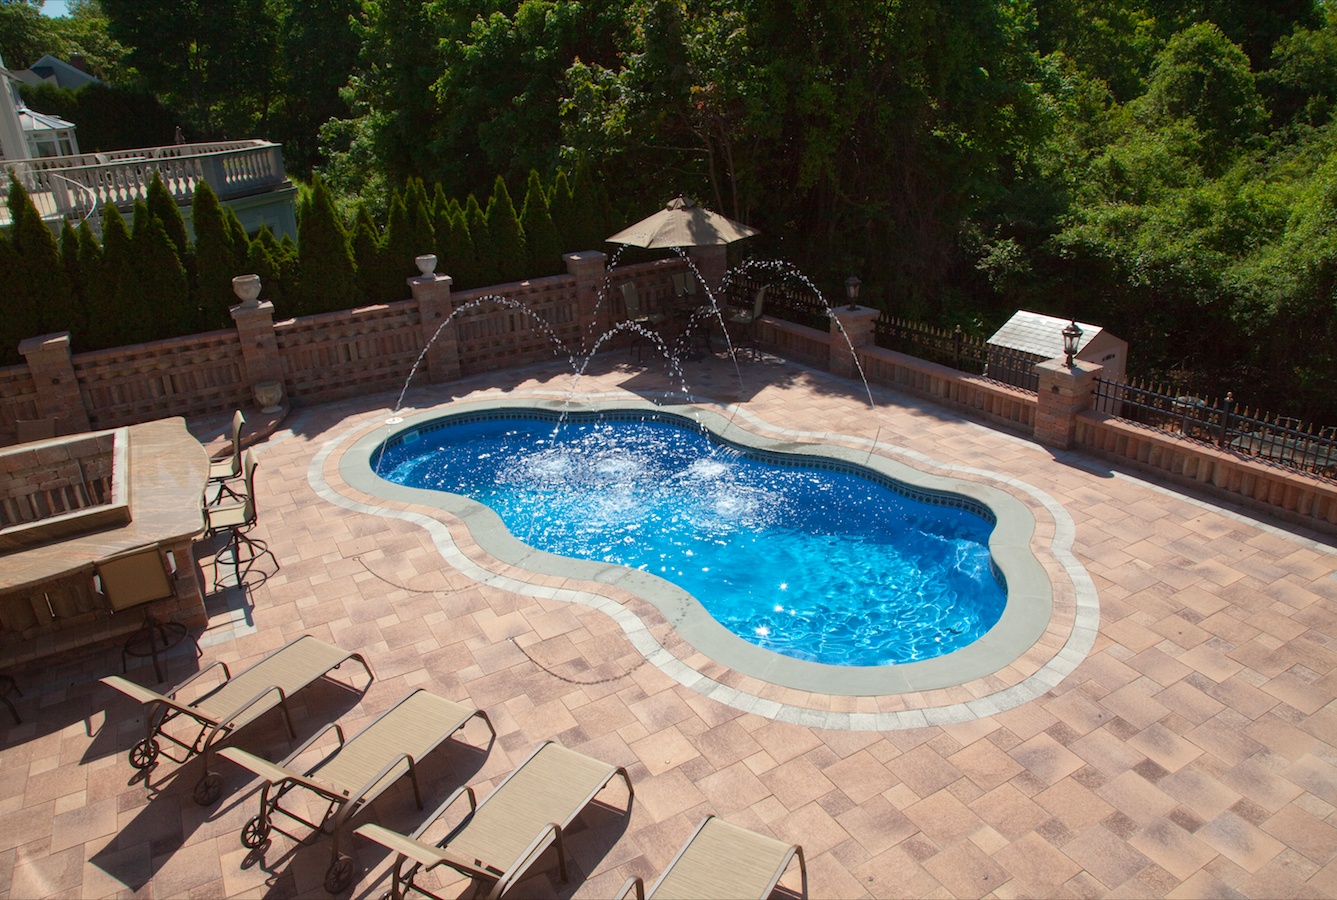 Deciding on Concrete Pavers for Your Pool Patio Installation Project in Millis MA & Deciding on Concrete Pavers for Your Pool Patio Installation Project ...